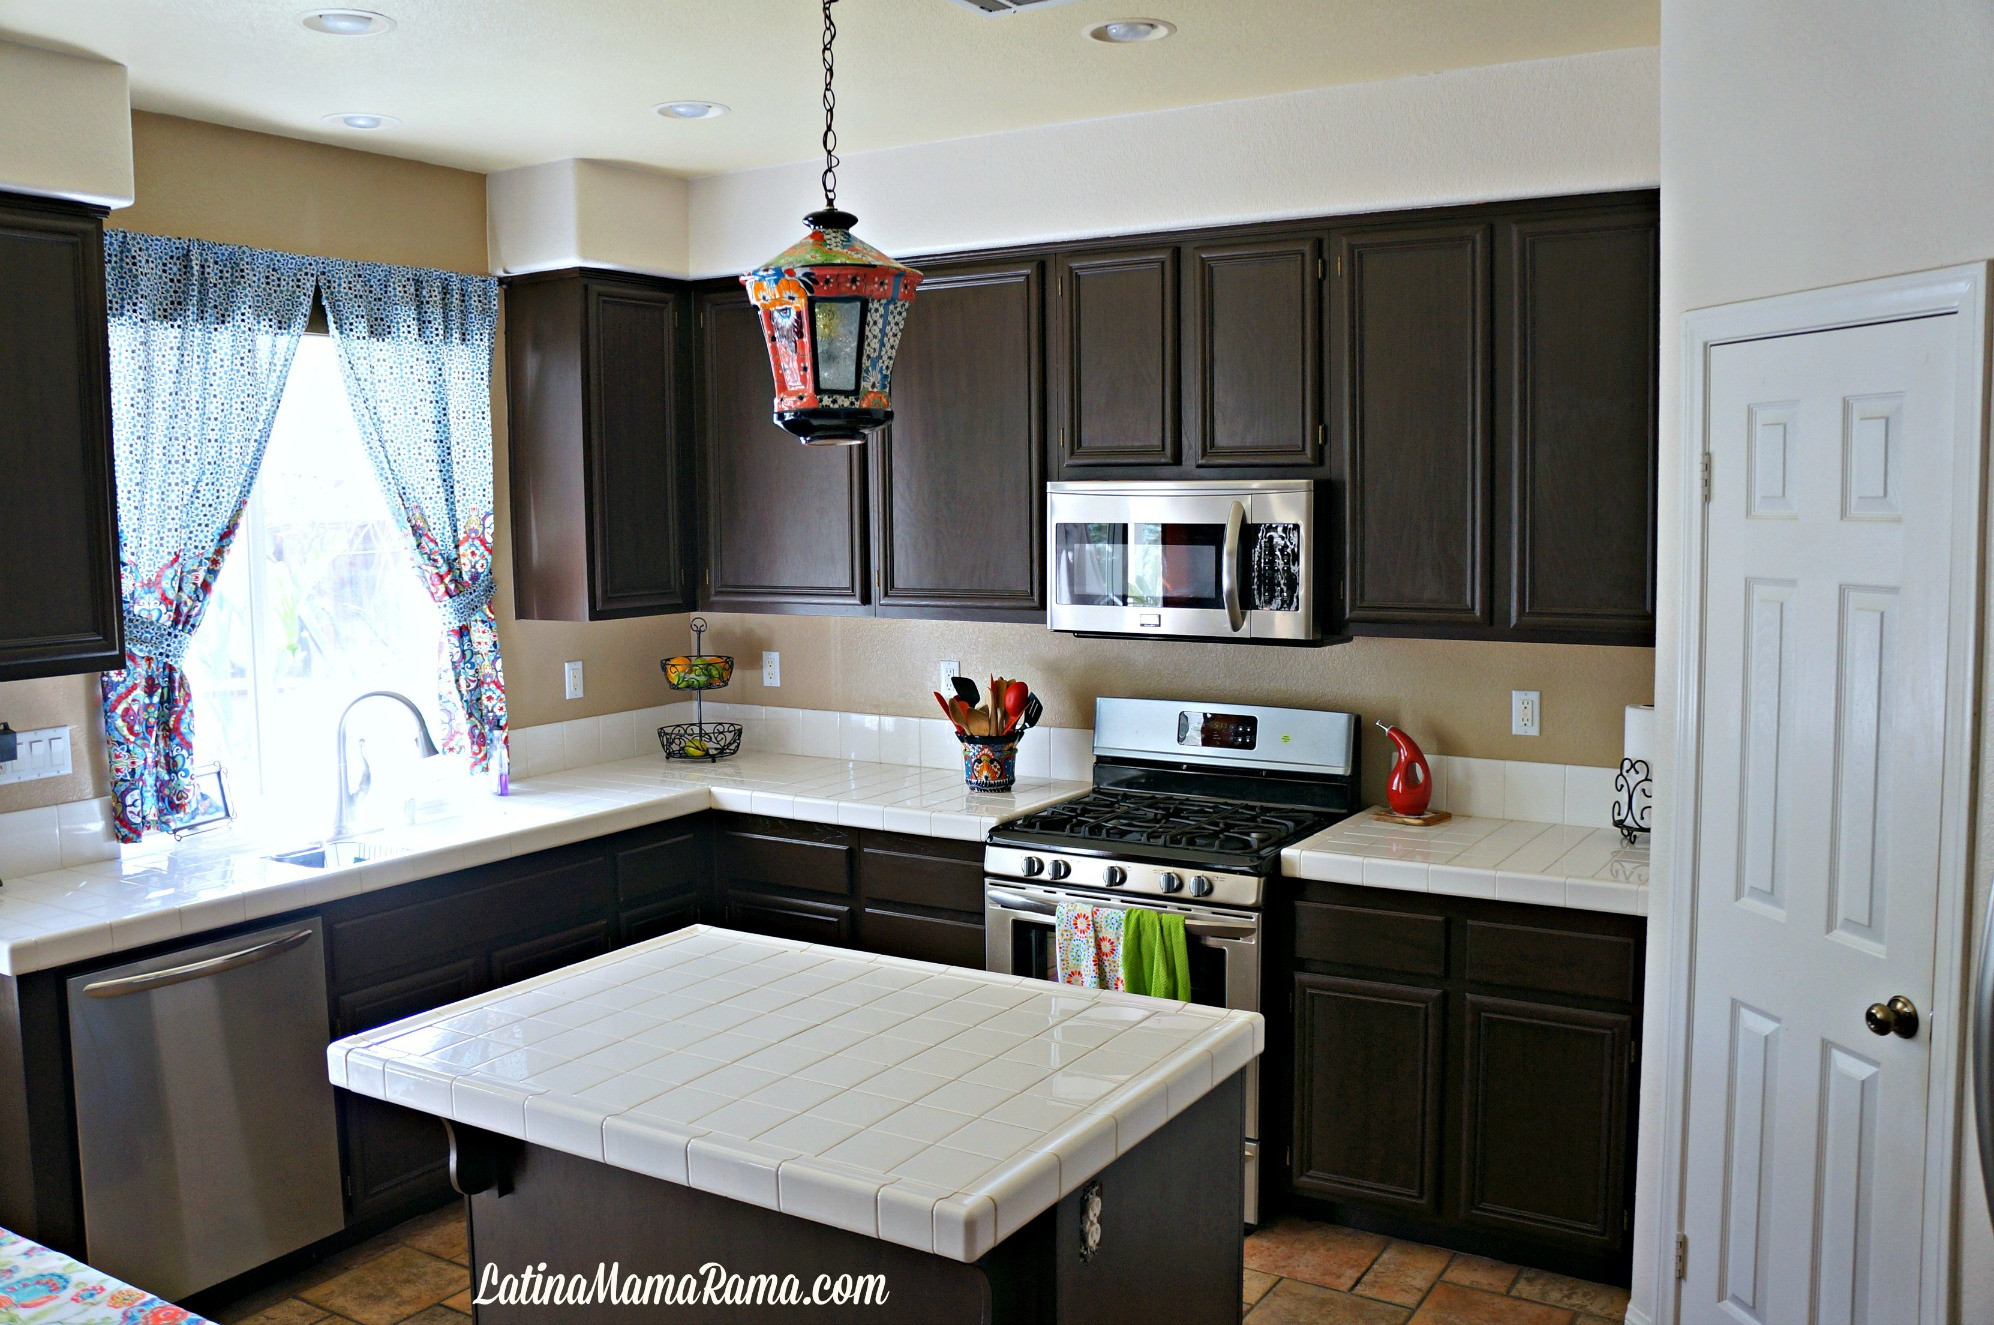 Best ideas about Refinishing Cabinets DIY . Save or Pin How to Refinish Your Kitchen Cabinets Latina Mama Rama Now.